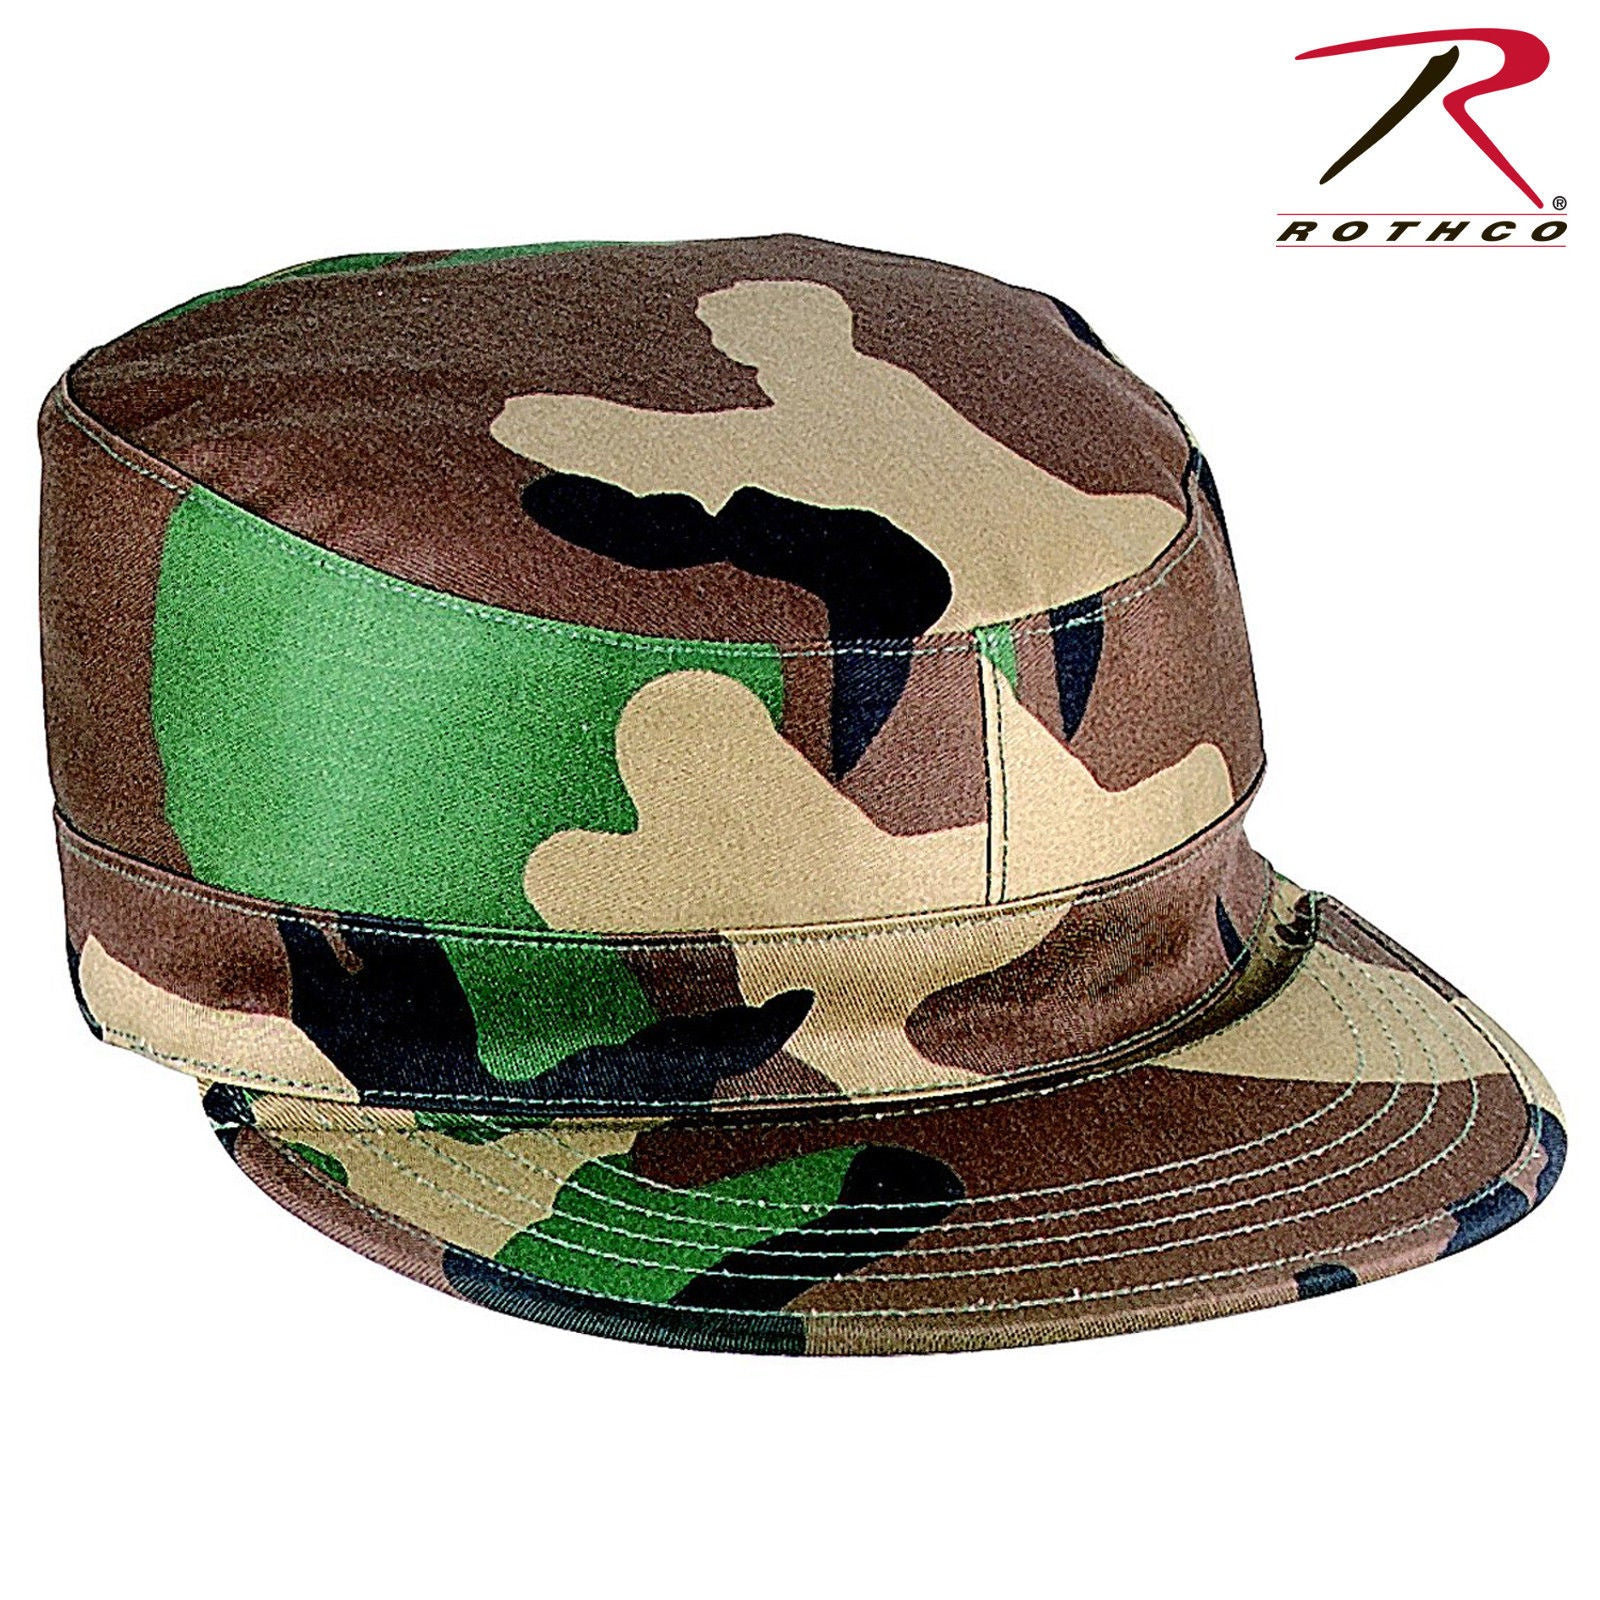 60809f79d3a9e ... Camouflage Fatigue Caps. Zoom. Move your mouse over image or click to  enlarge